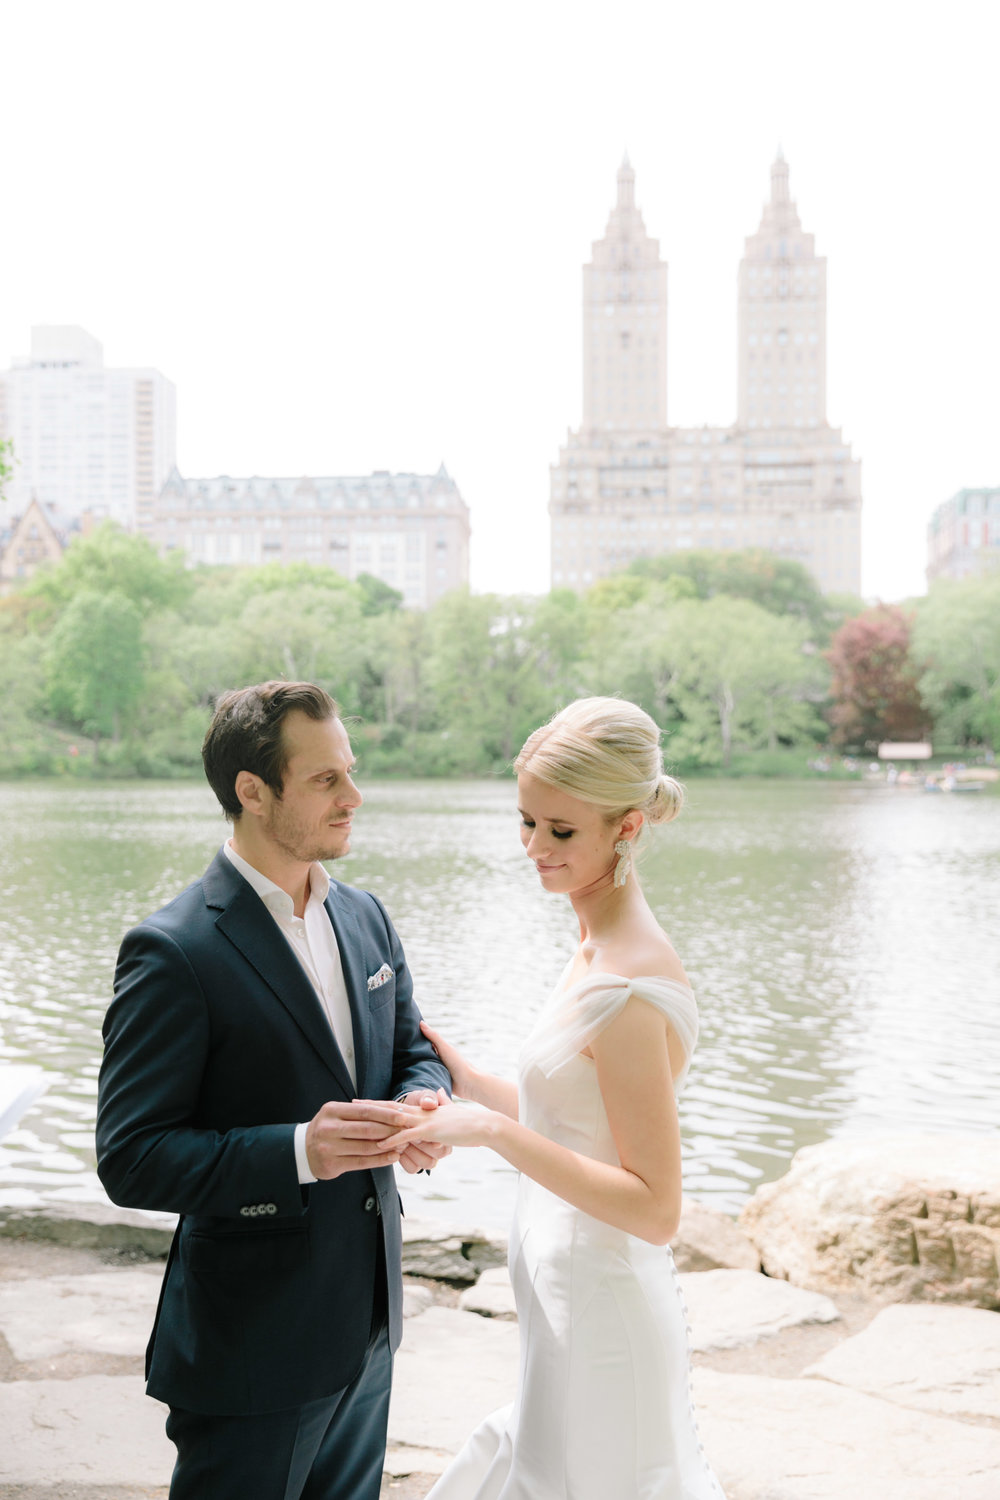 Intimate-NYC_wedding_ by Tanya Isaeva-104.jpg